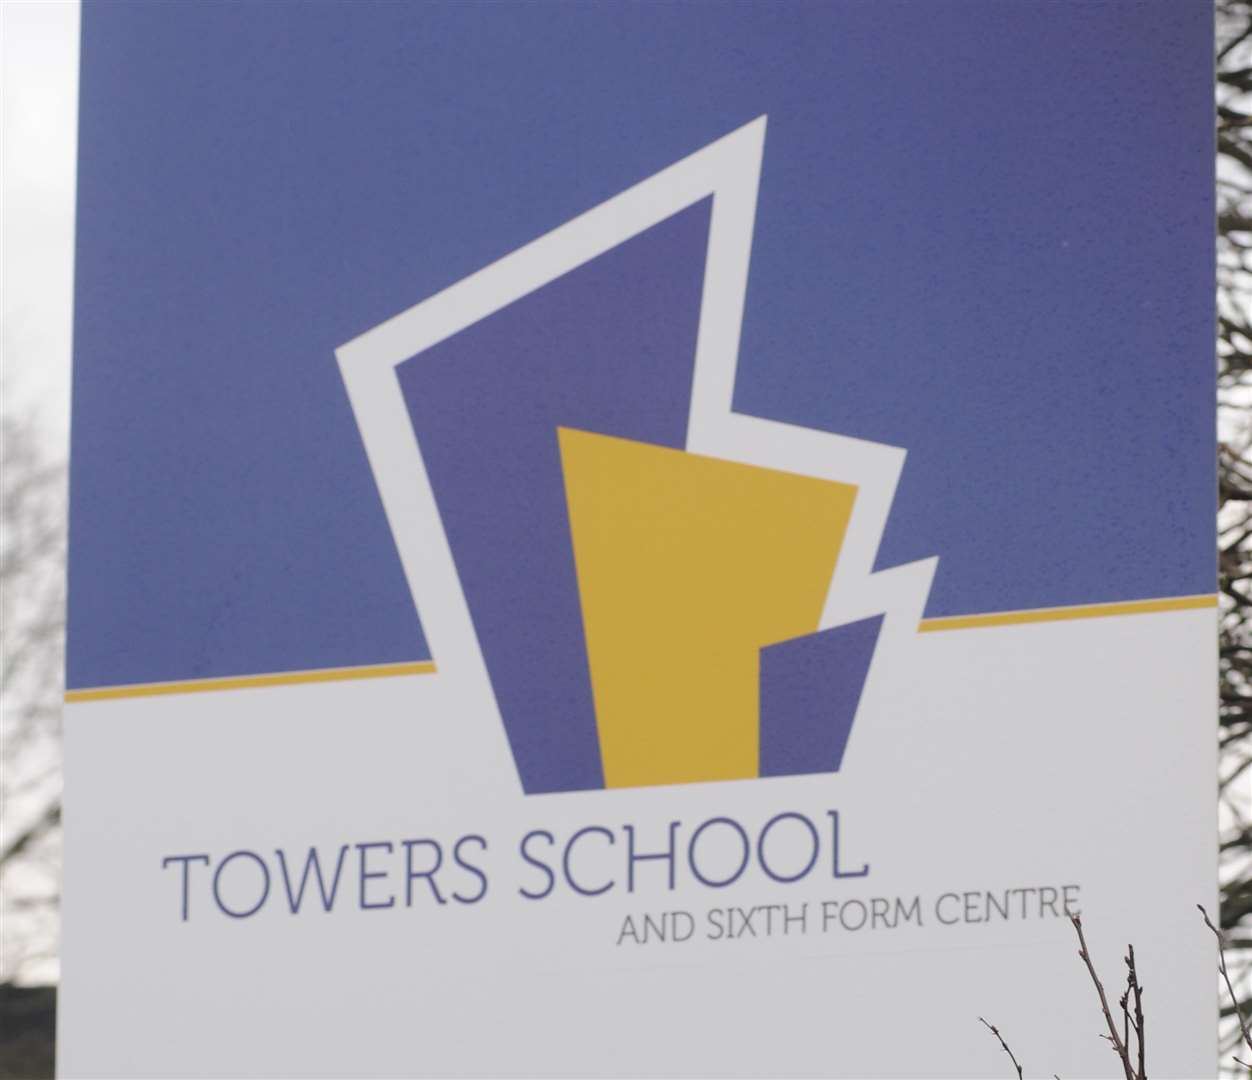 Towers School has been criticised